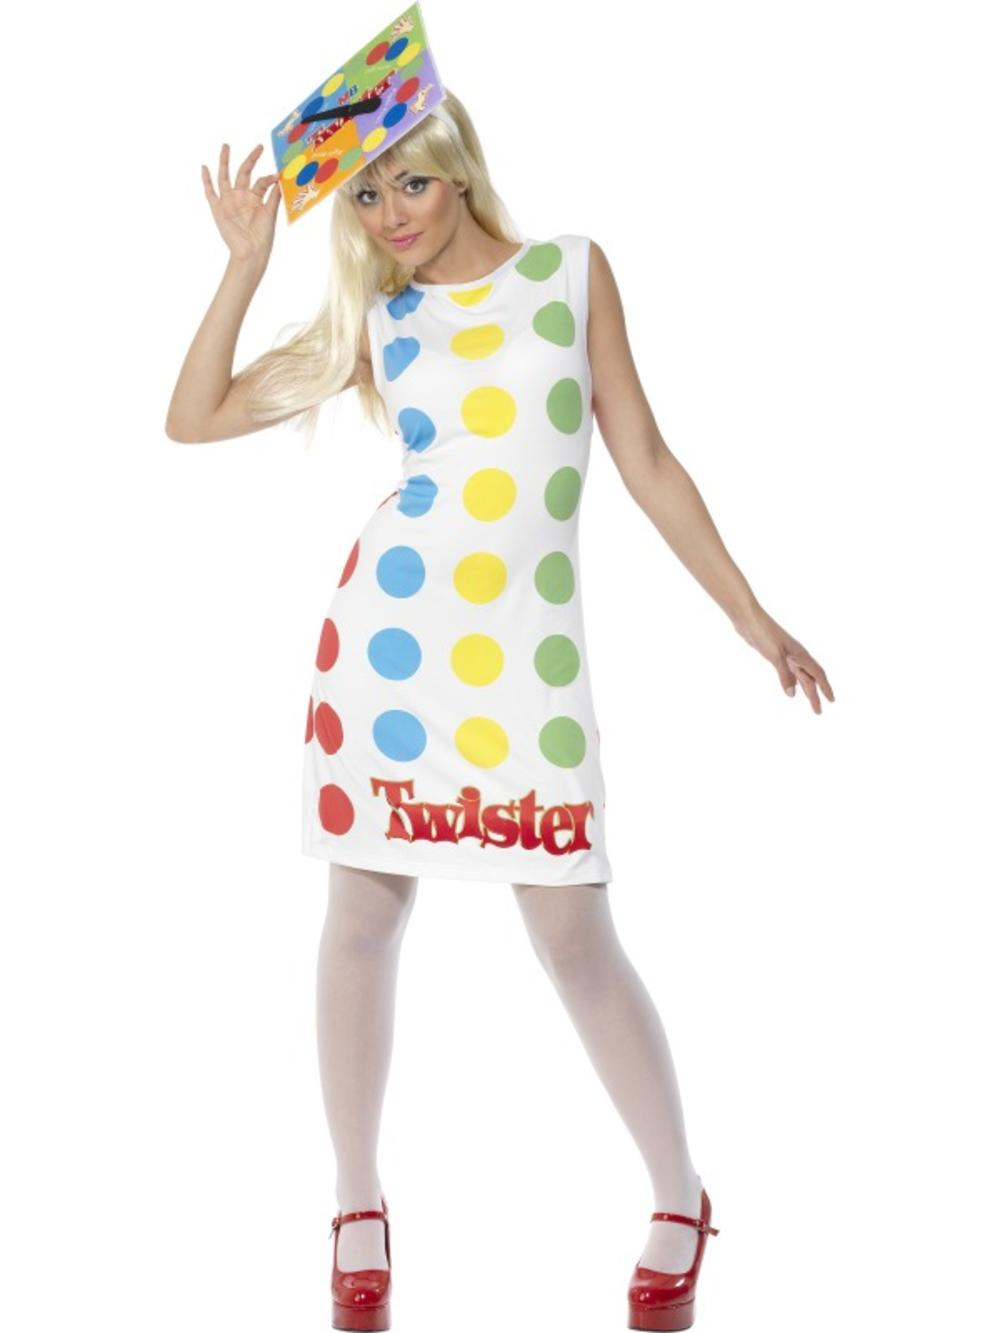 Twister Ladies Fancy Dress Fun Toy Board Game Adults Novelty Costume Outfit